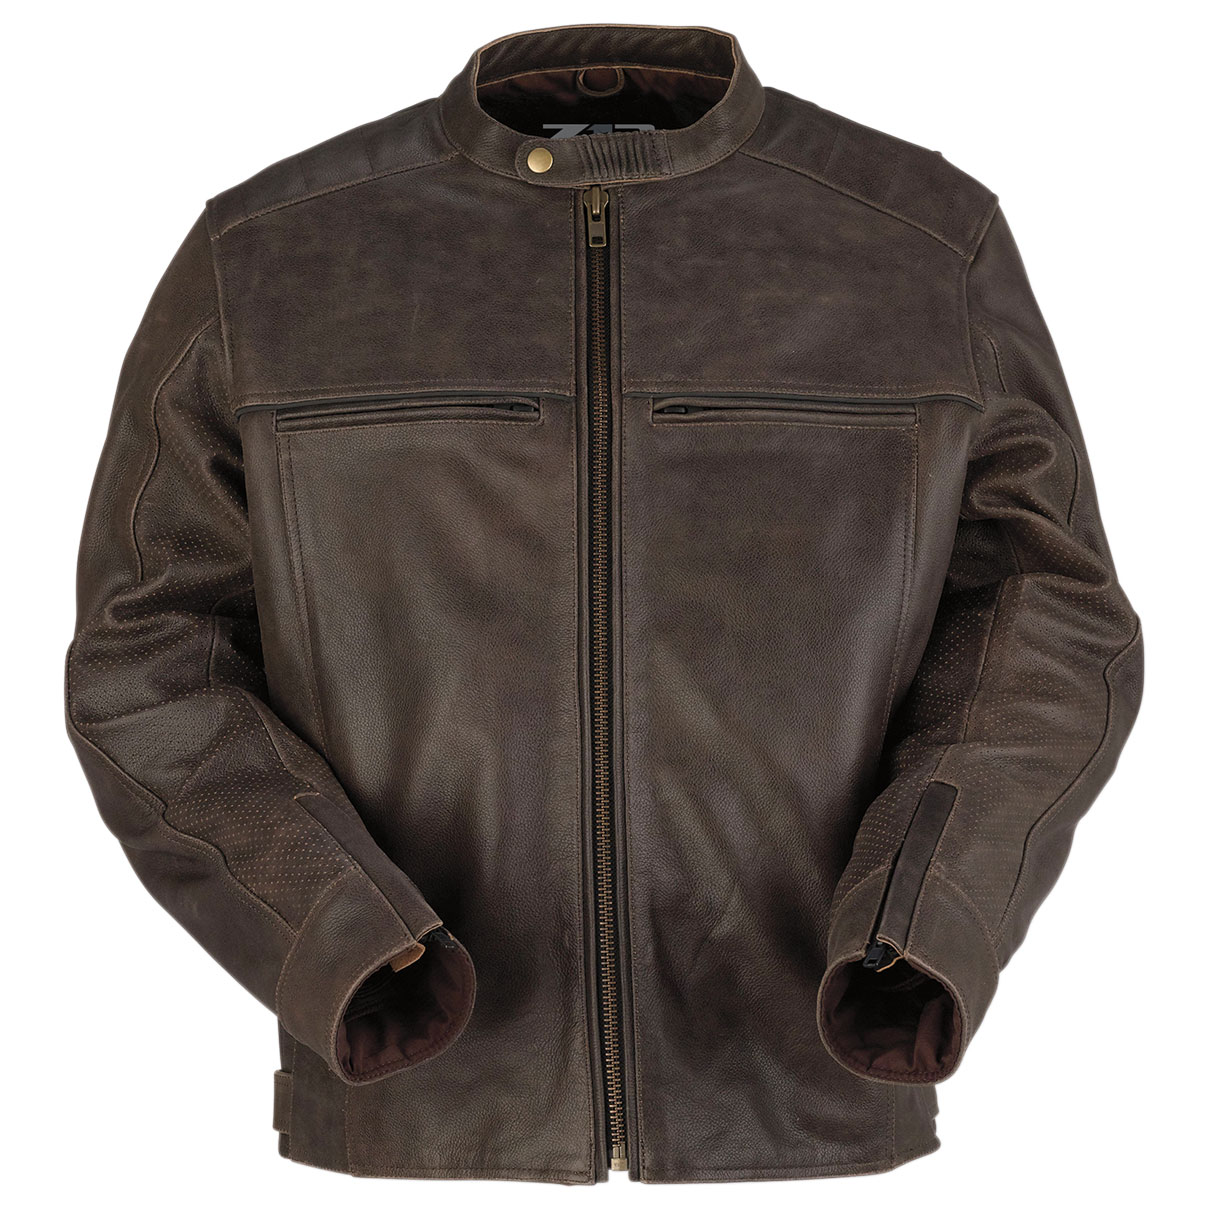 Z1R Men's Indiana Brown Leather Jacket